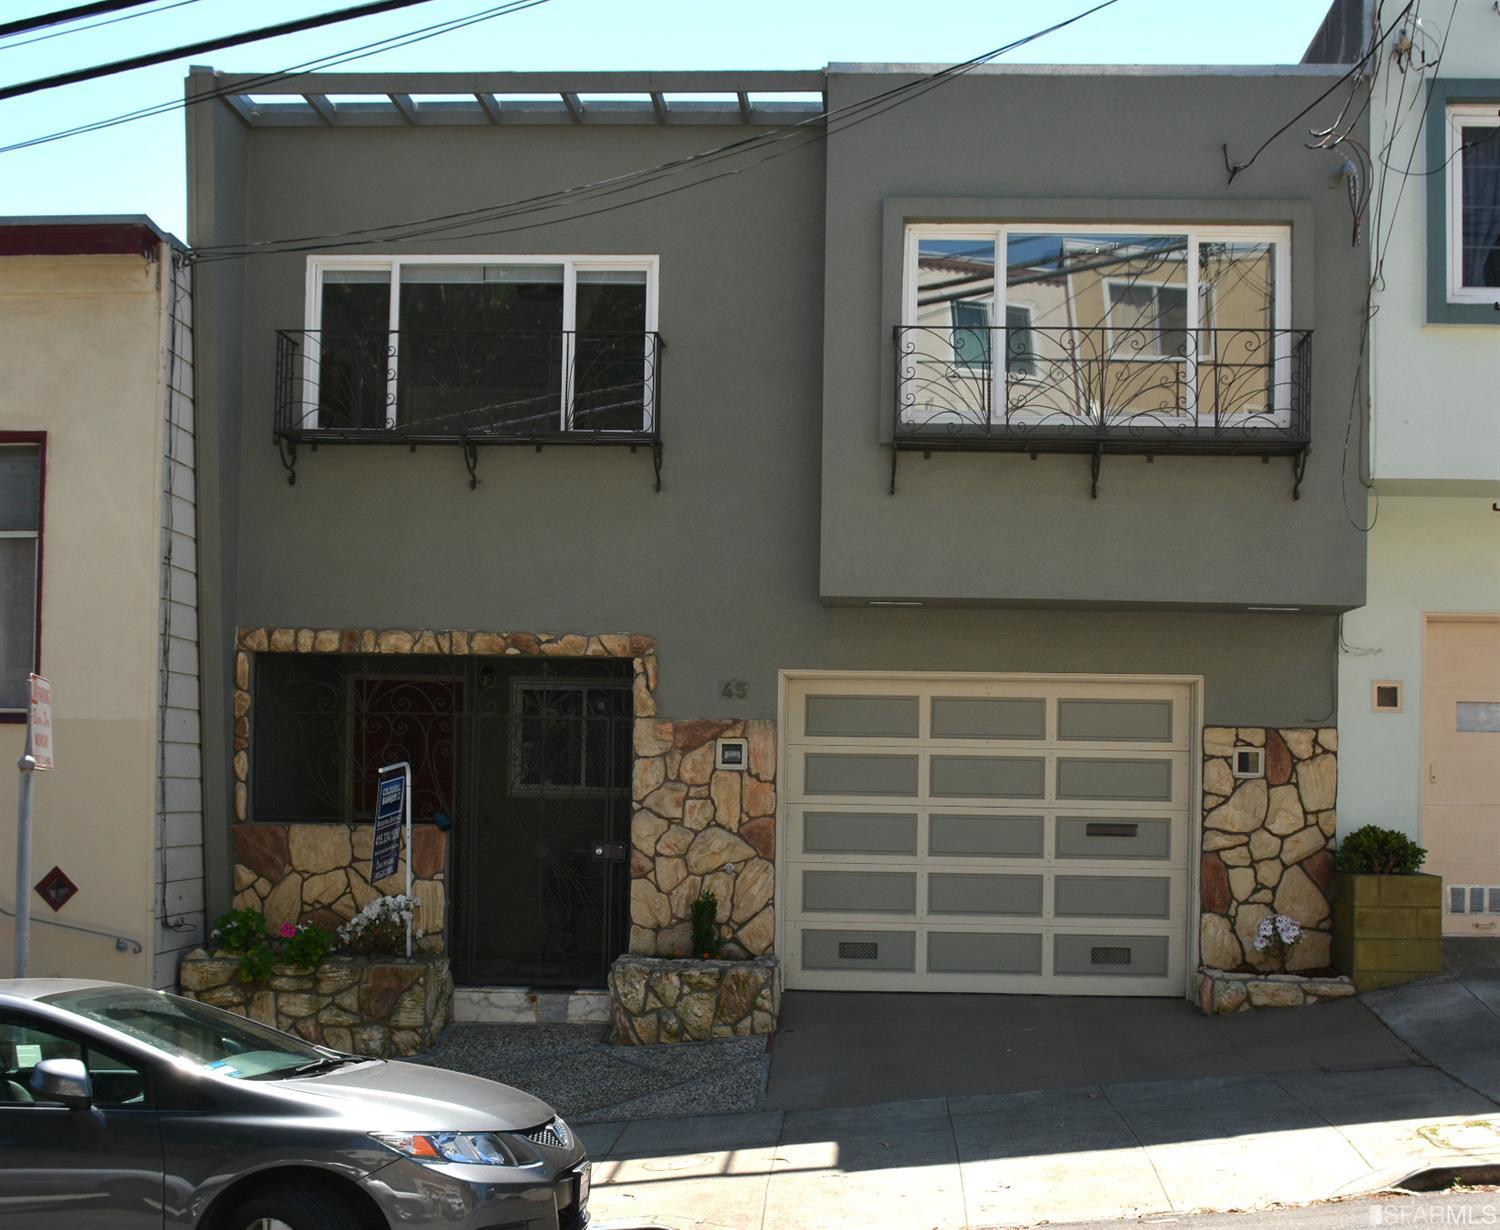 45 Teddy Ave, San Francisco, CA